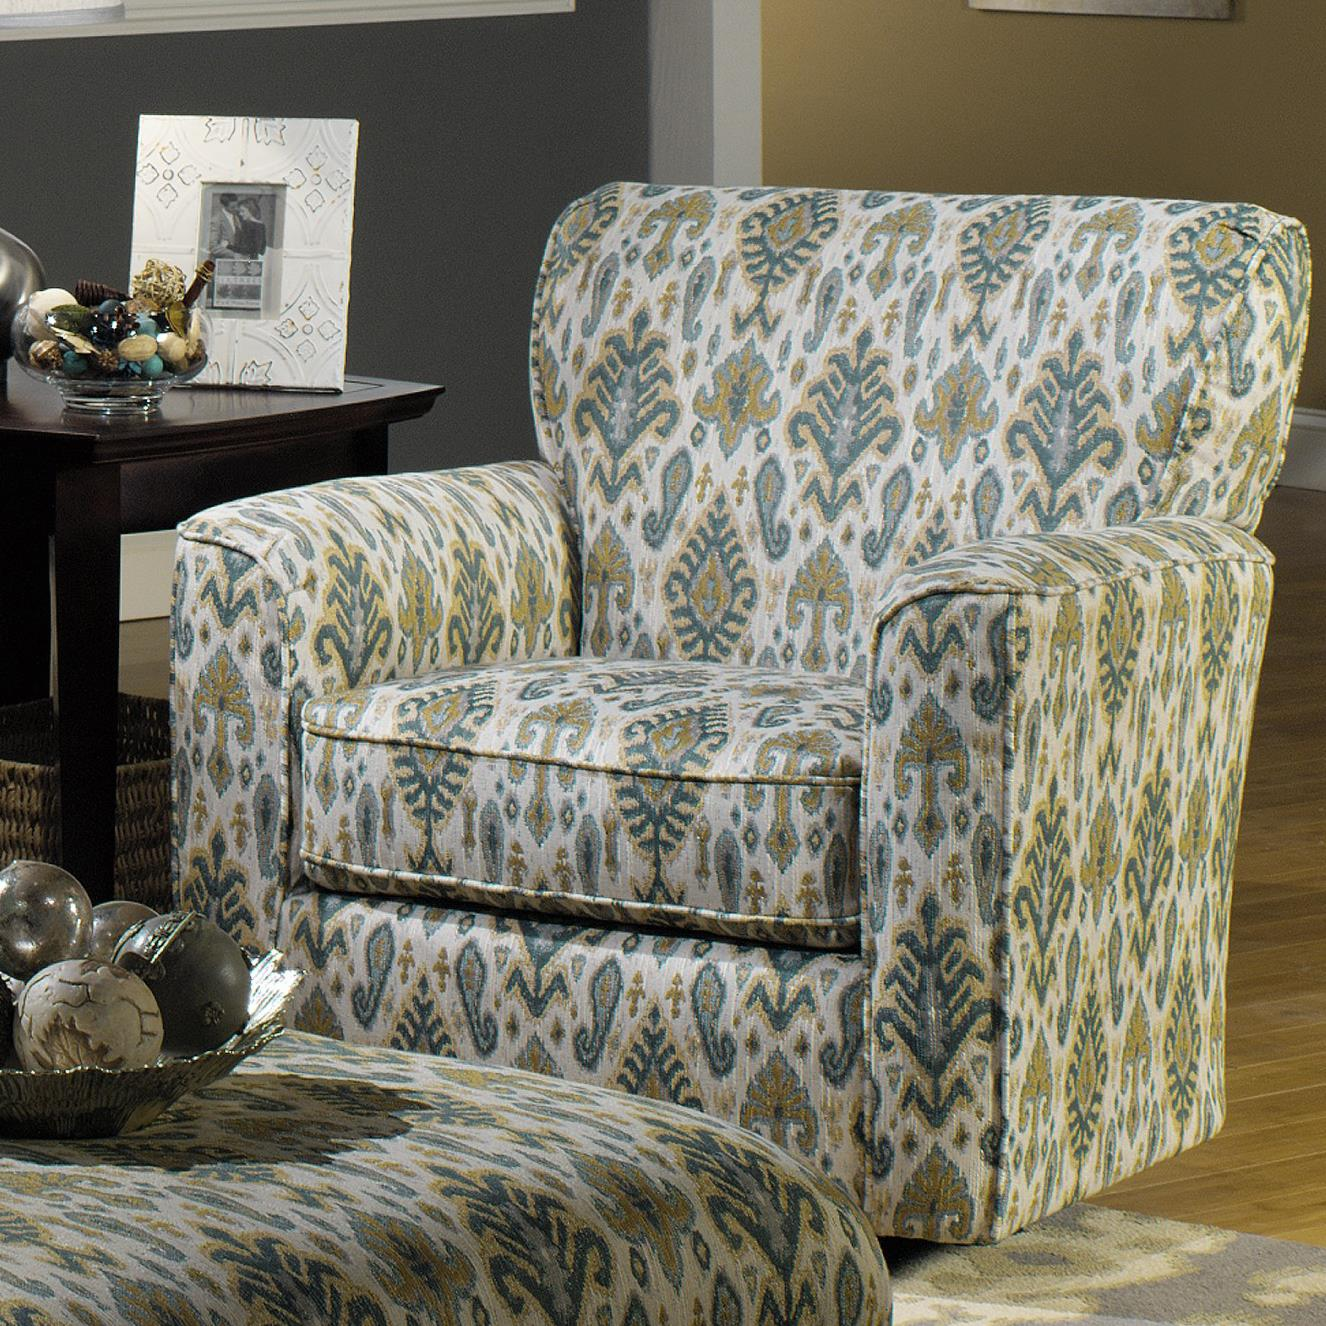 Upholstered Arm Chairs Accent Chairs Contemporary Upholstered Swivel Chair With Flared Arms And Welt Cord Trim By Craftmaster At Becker Furniture World